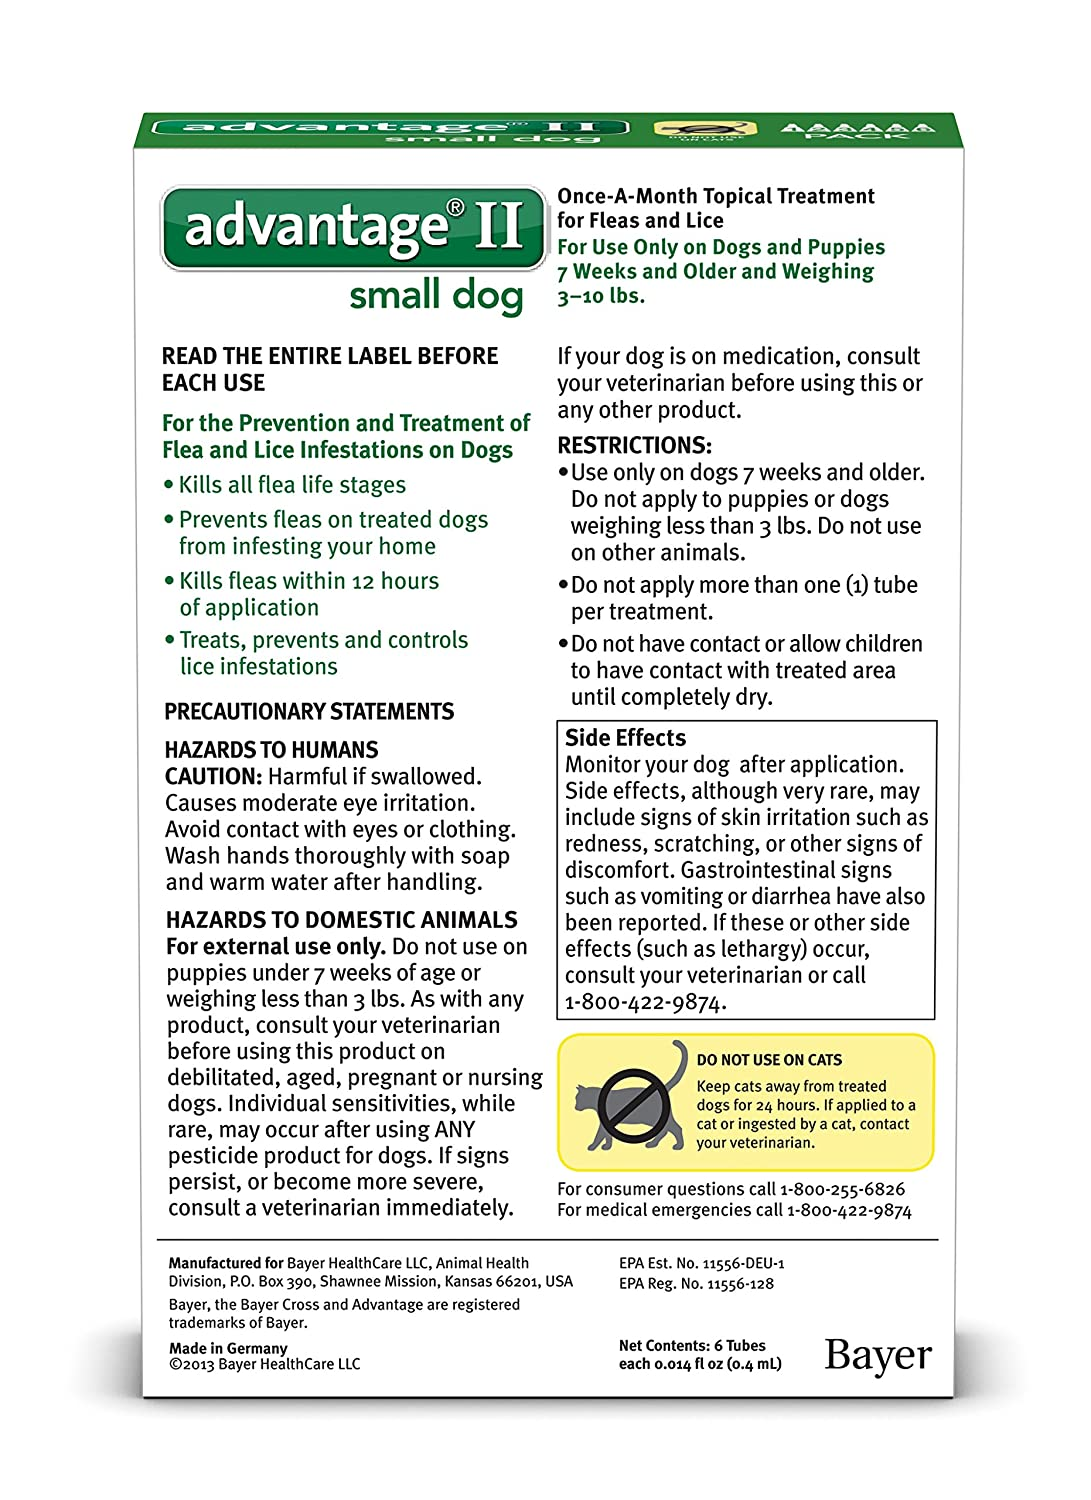 Amazon bayer advantage ii flea and lice treatment for small amazon bayer advantage ii flea and lice treatment for small dogs 3 10 lb 4 doses pet flea drops pet supplies nvjuhfo Image collections